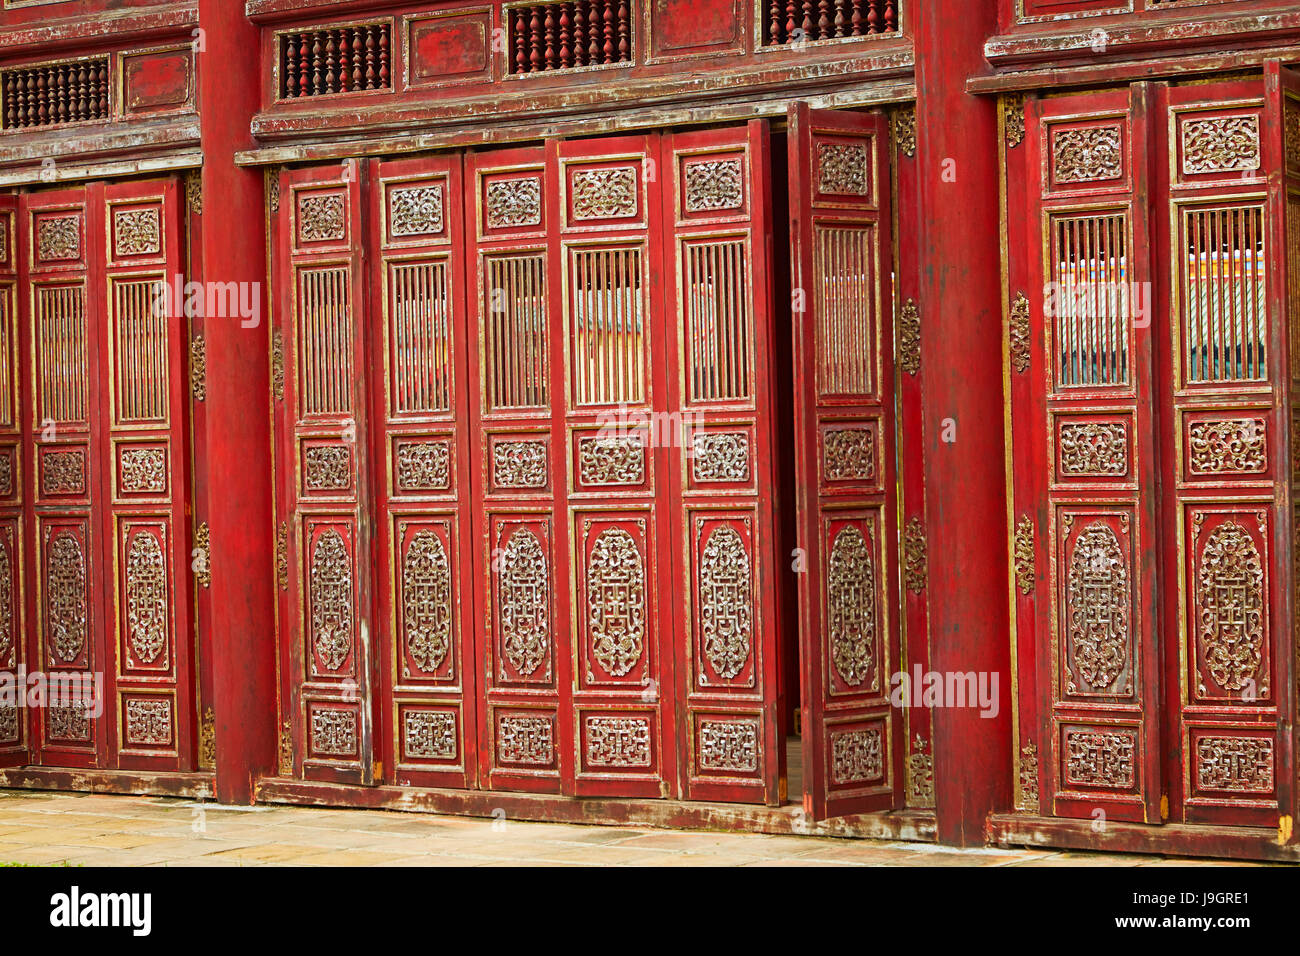 Red doors in the Forbidden Purple City historic Hue Citadel (Imperial City) Hue North Central Coast Vietnam & Red doors in the Forbidden Purple City historic Hue Citadel Stock ...